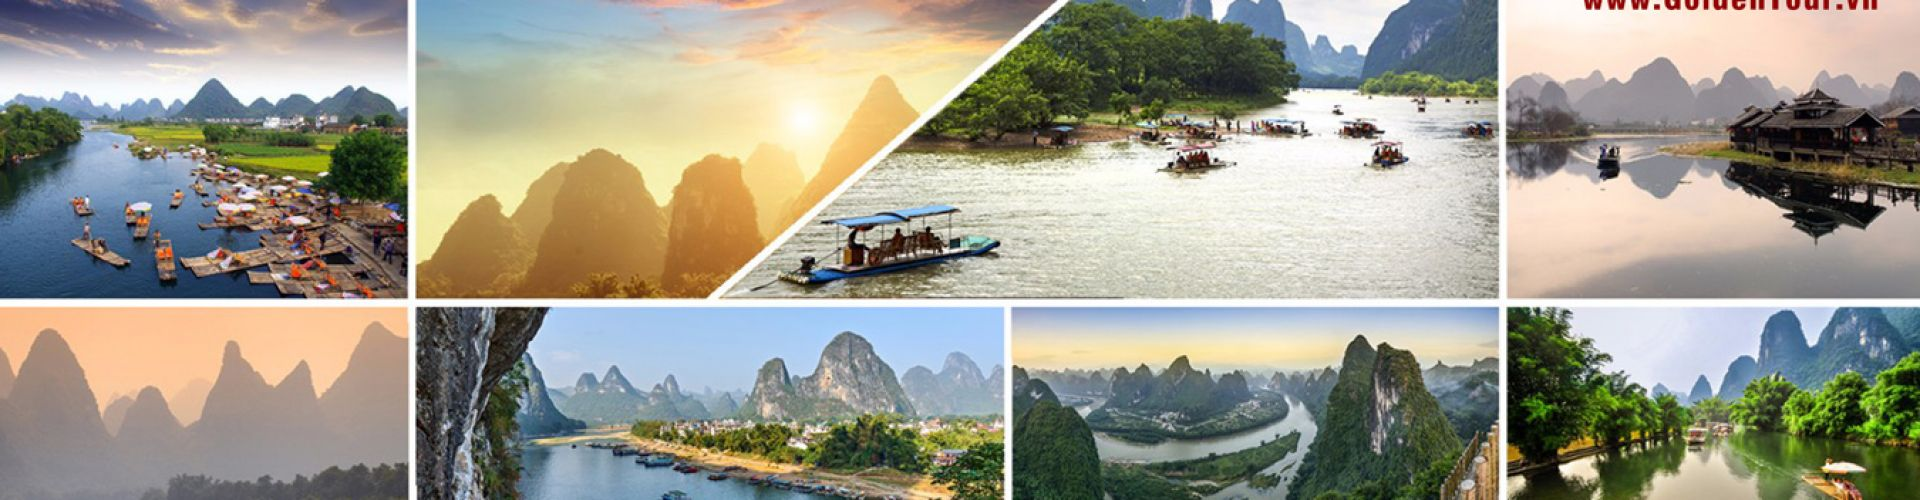 Destinations in Guilin